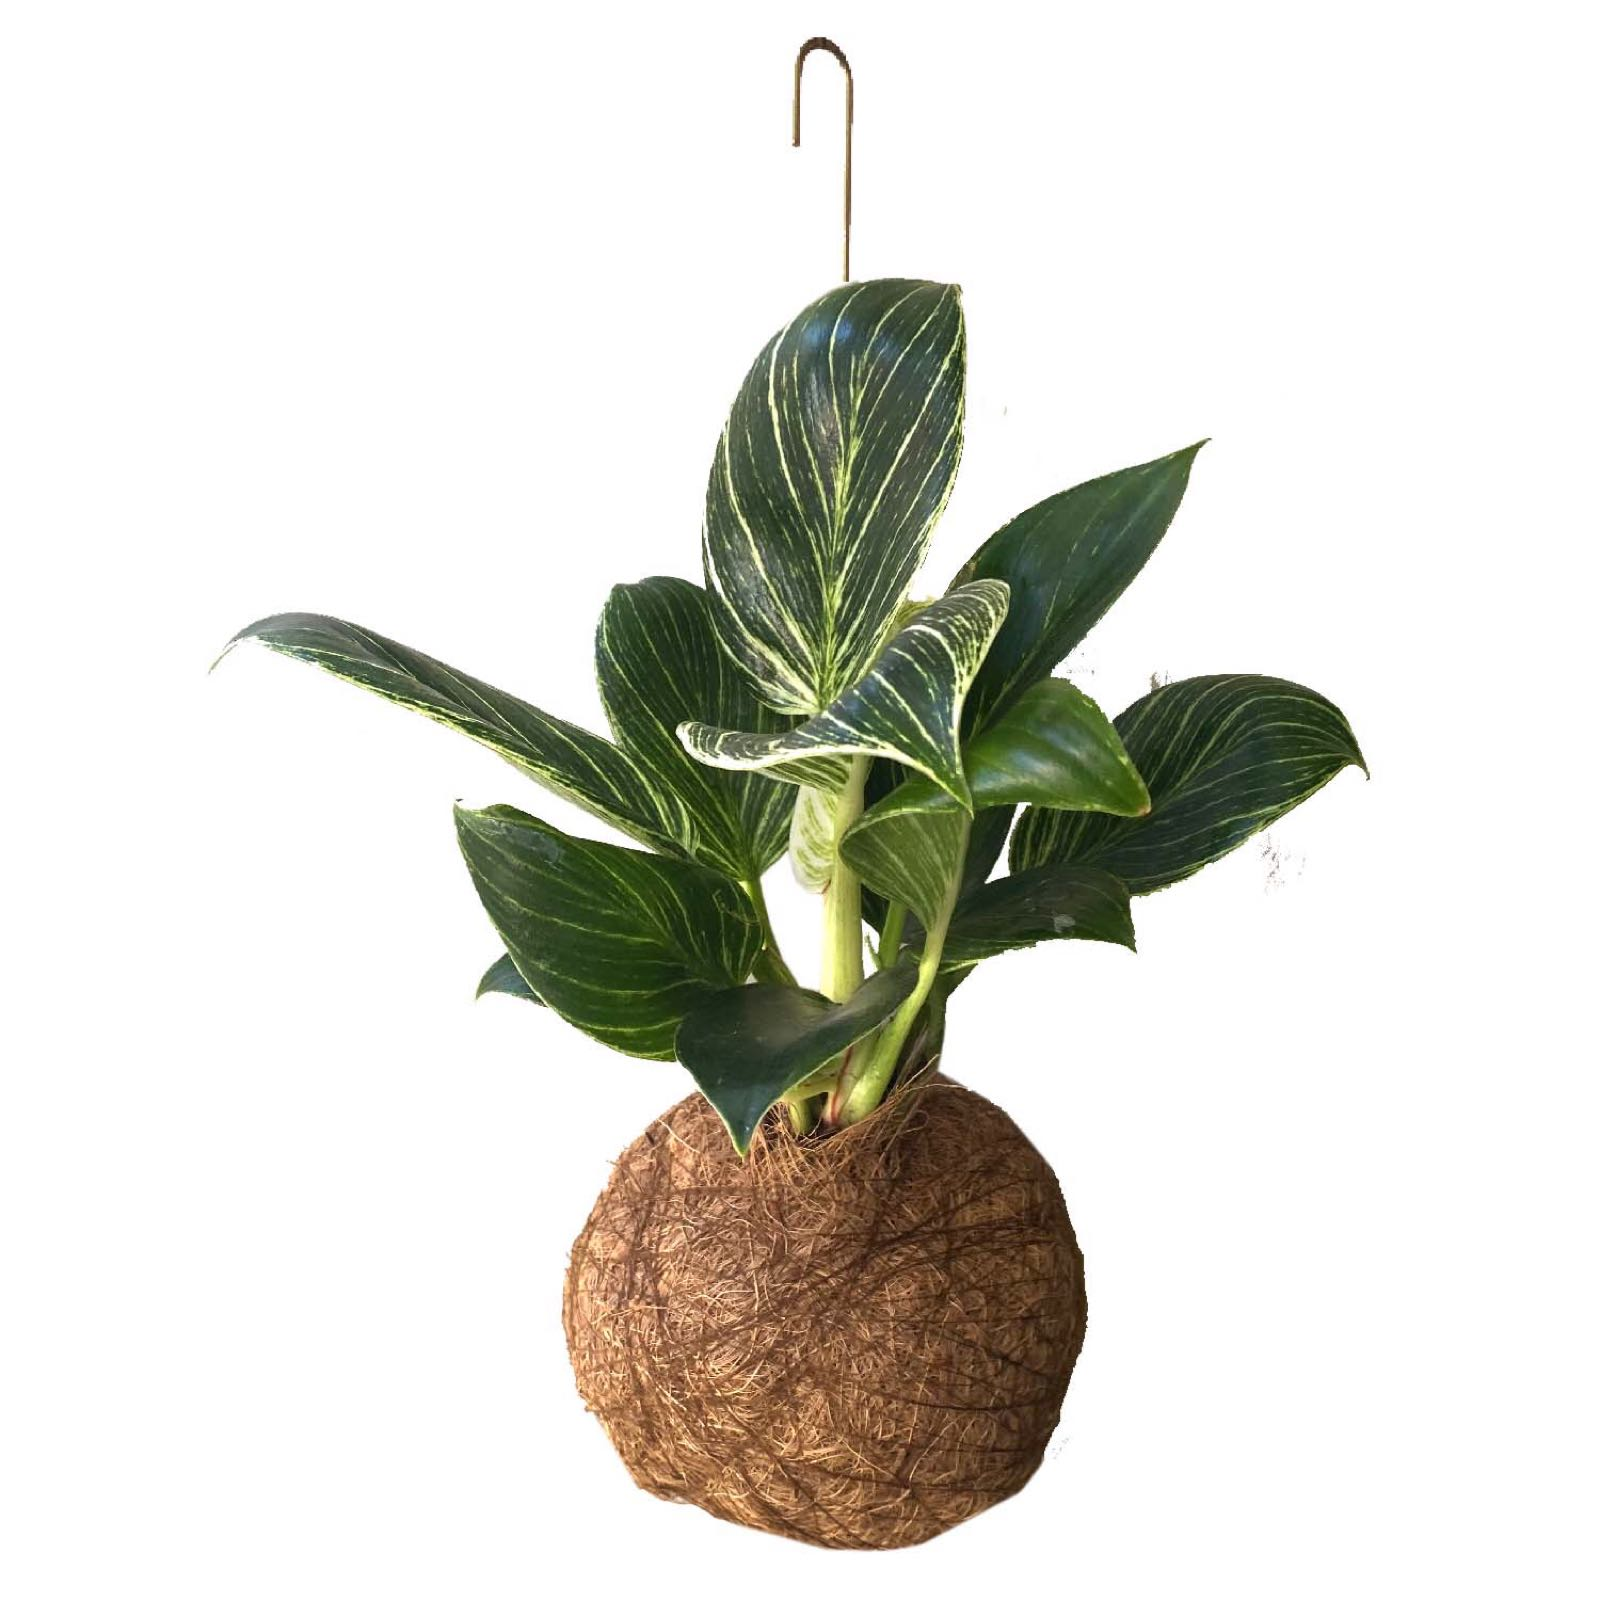 Planteplanet L Philodendron